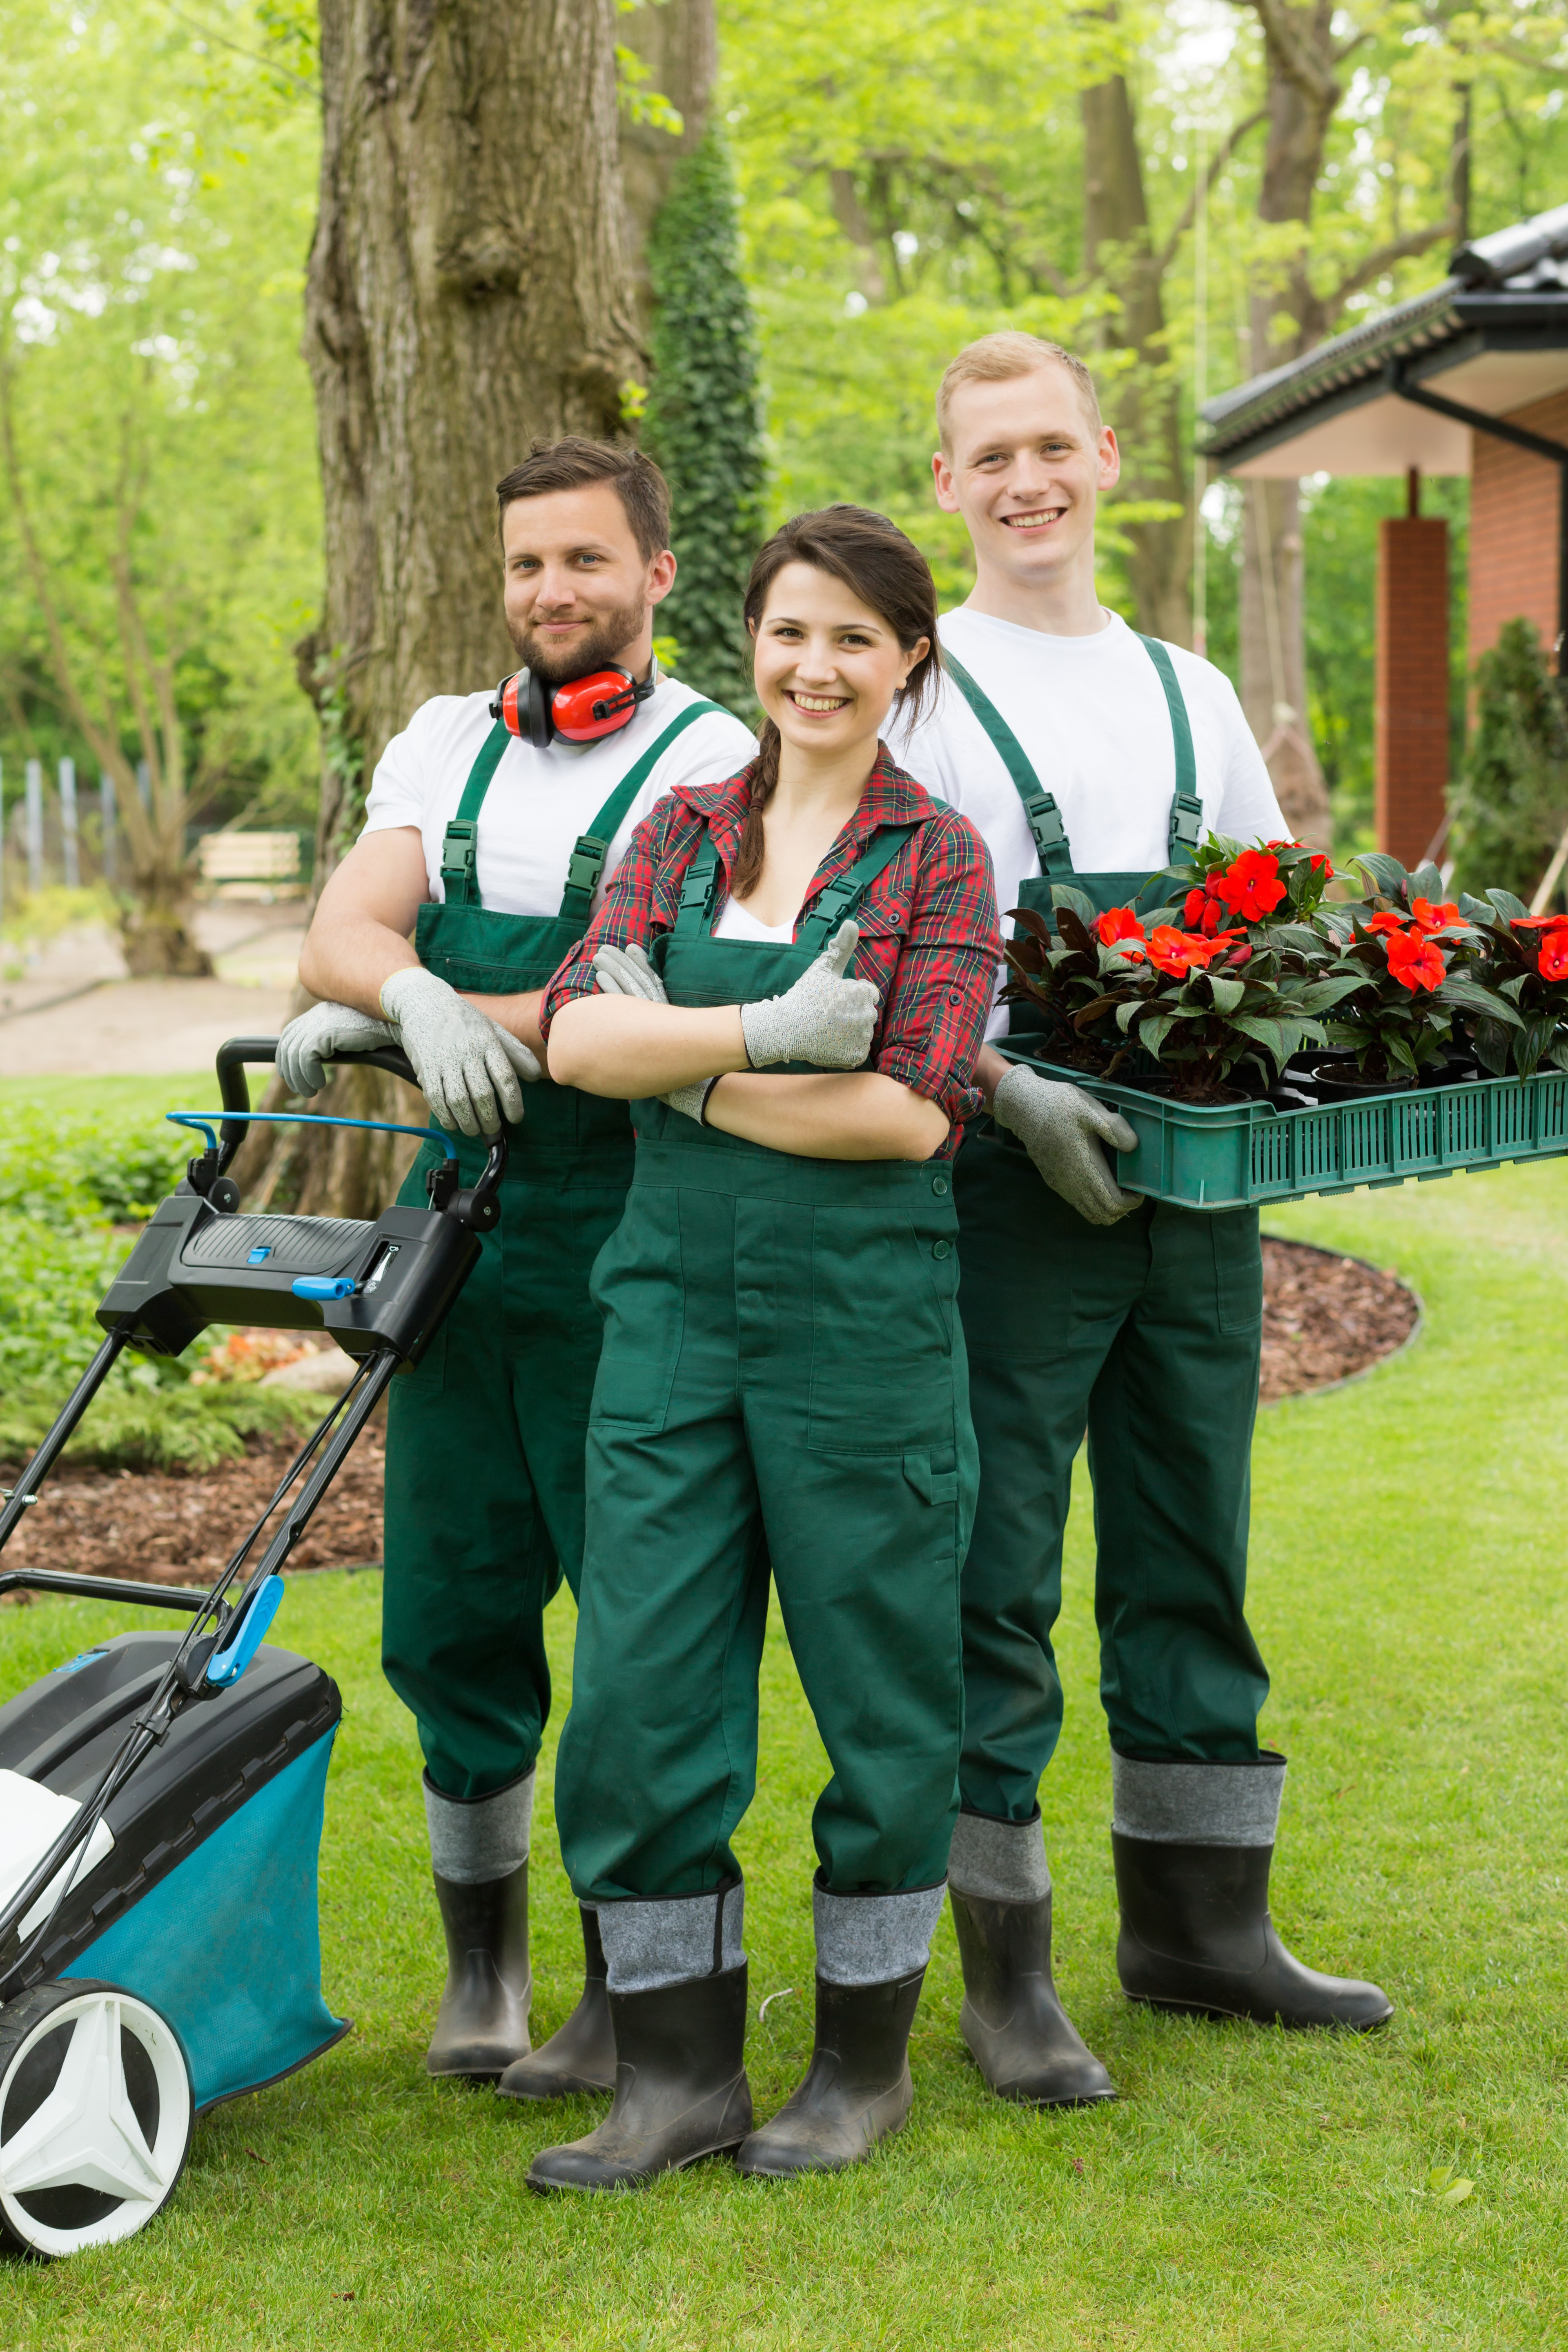 Happy gardeners with the box full of flower plants and the lawn mower in the garden